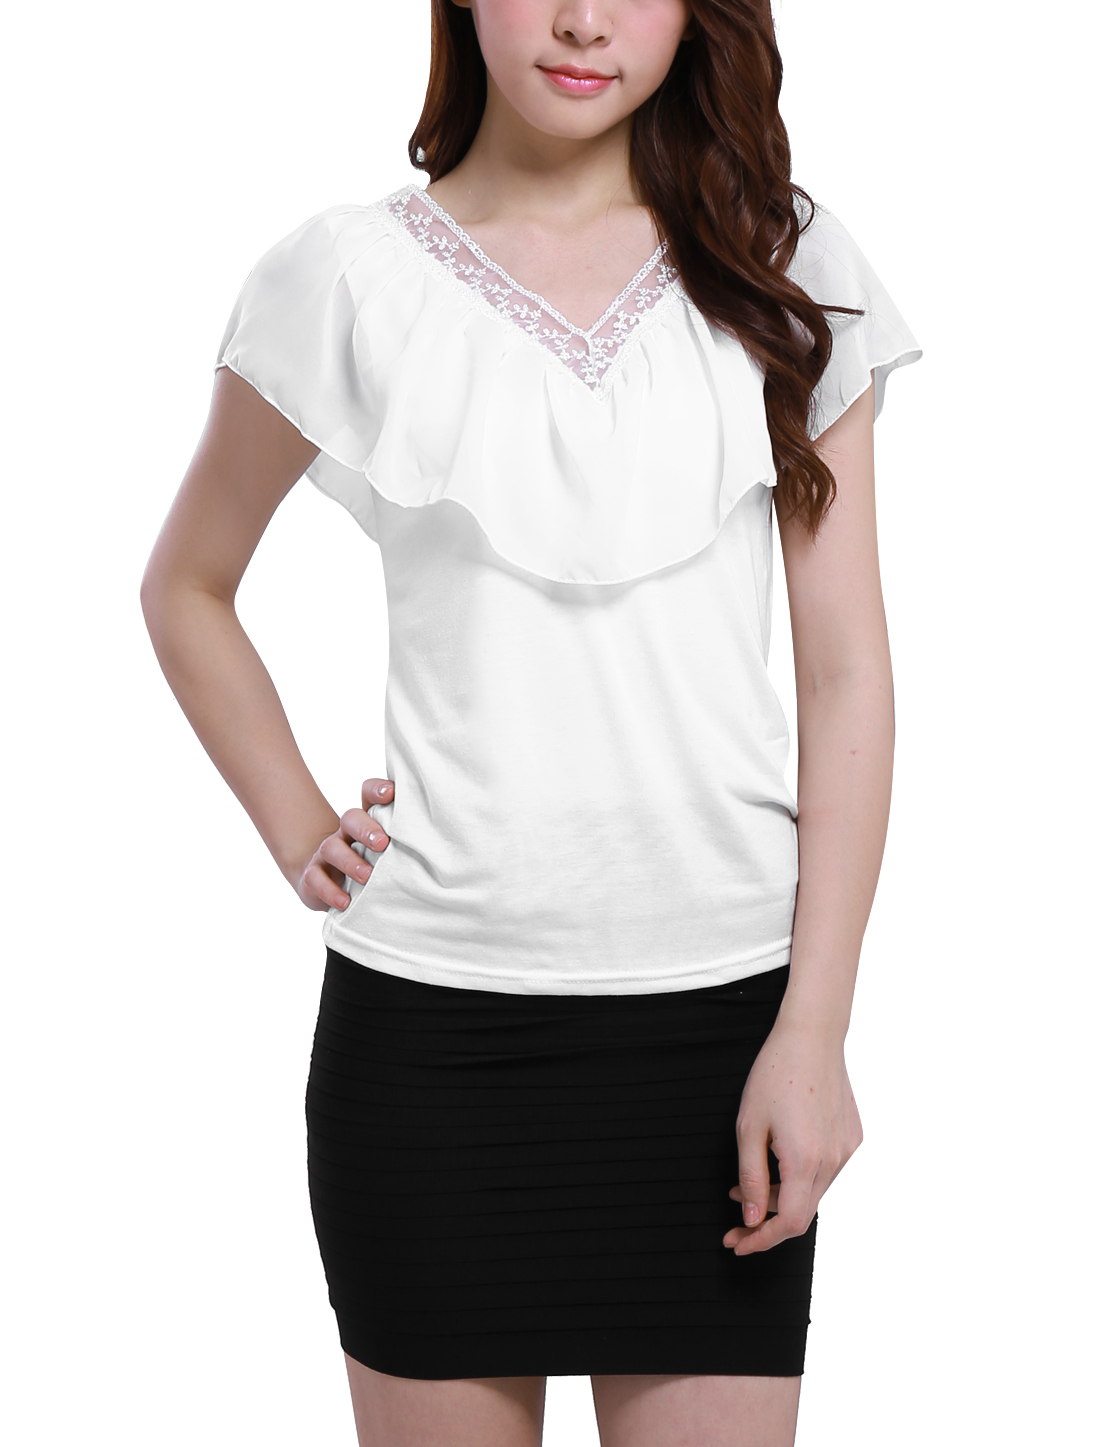 Ladies Chiffon Ruffle V Neck Stretch Embellished Tee Shirt XS